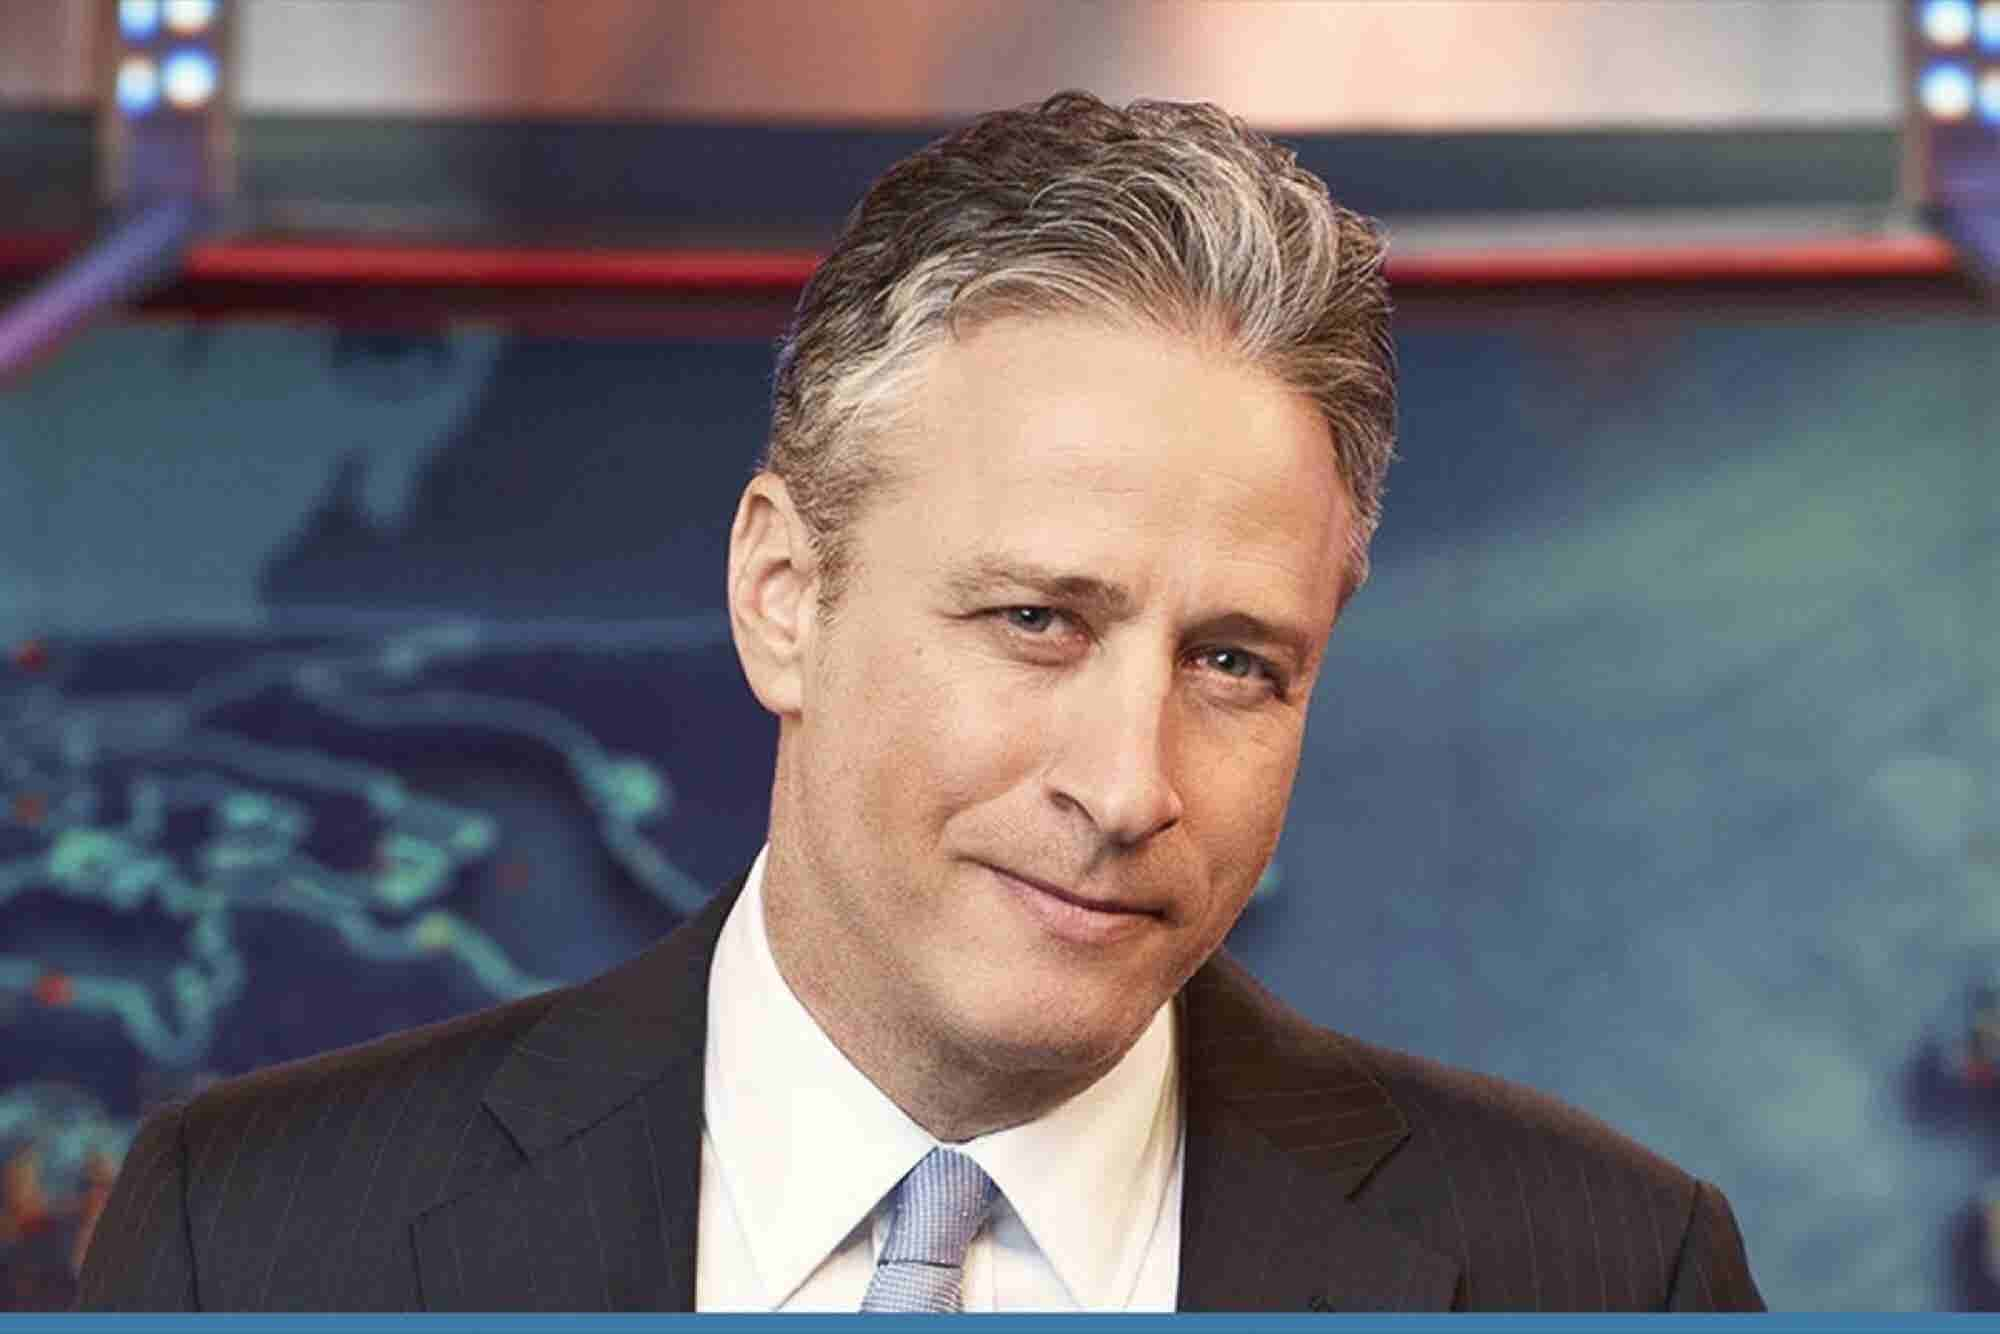 Arby's Bids Farewell to Its Favorite Hater, Jon Stewart, With an Ad Featuring His Insults